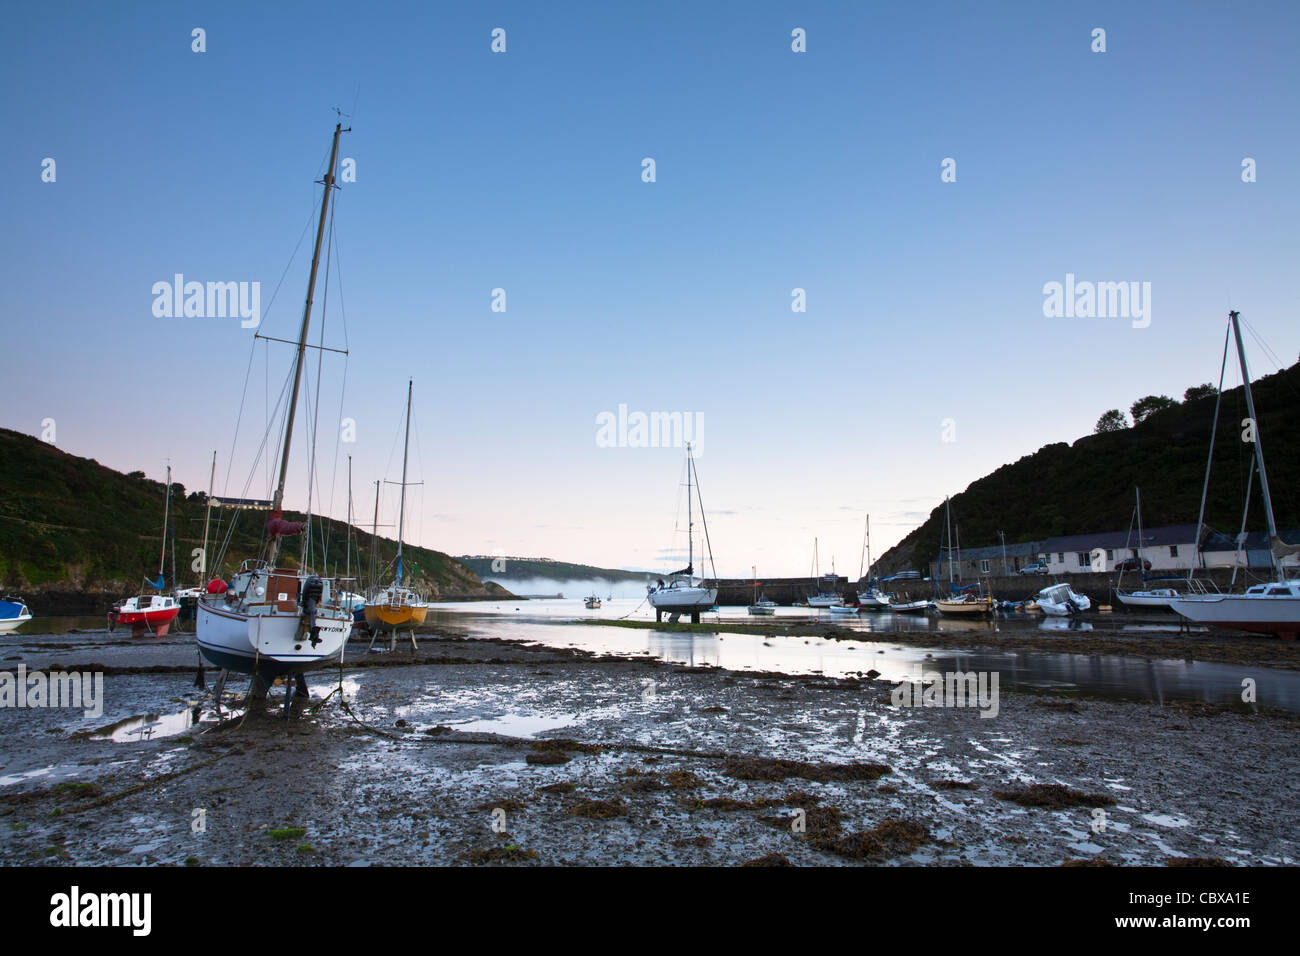 Summer dawn over the lower town harbour, Fishguard on the Pembrokeshire coast, Wales - Stock Image